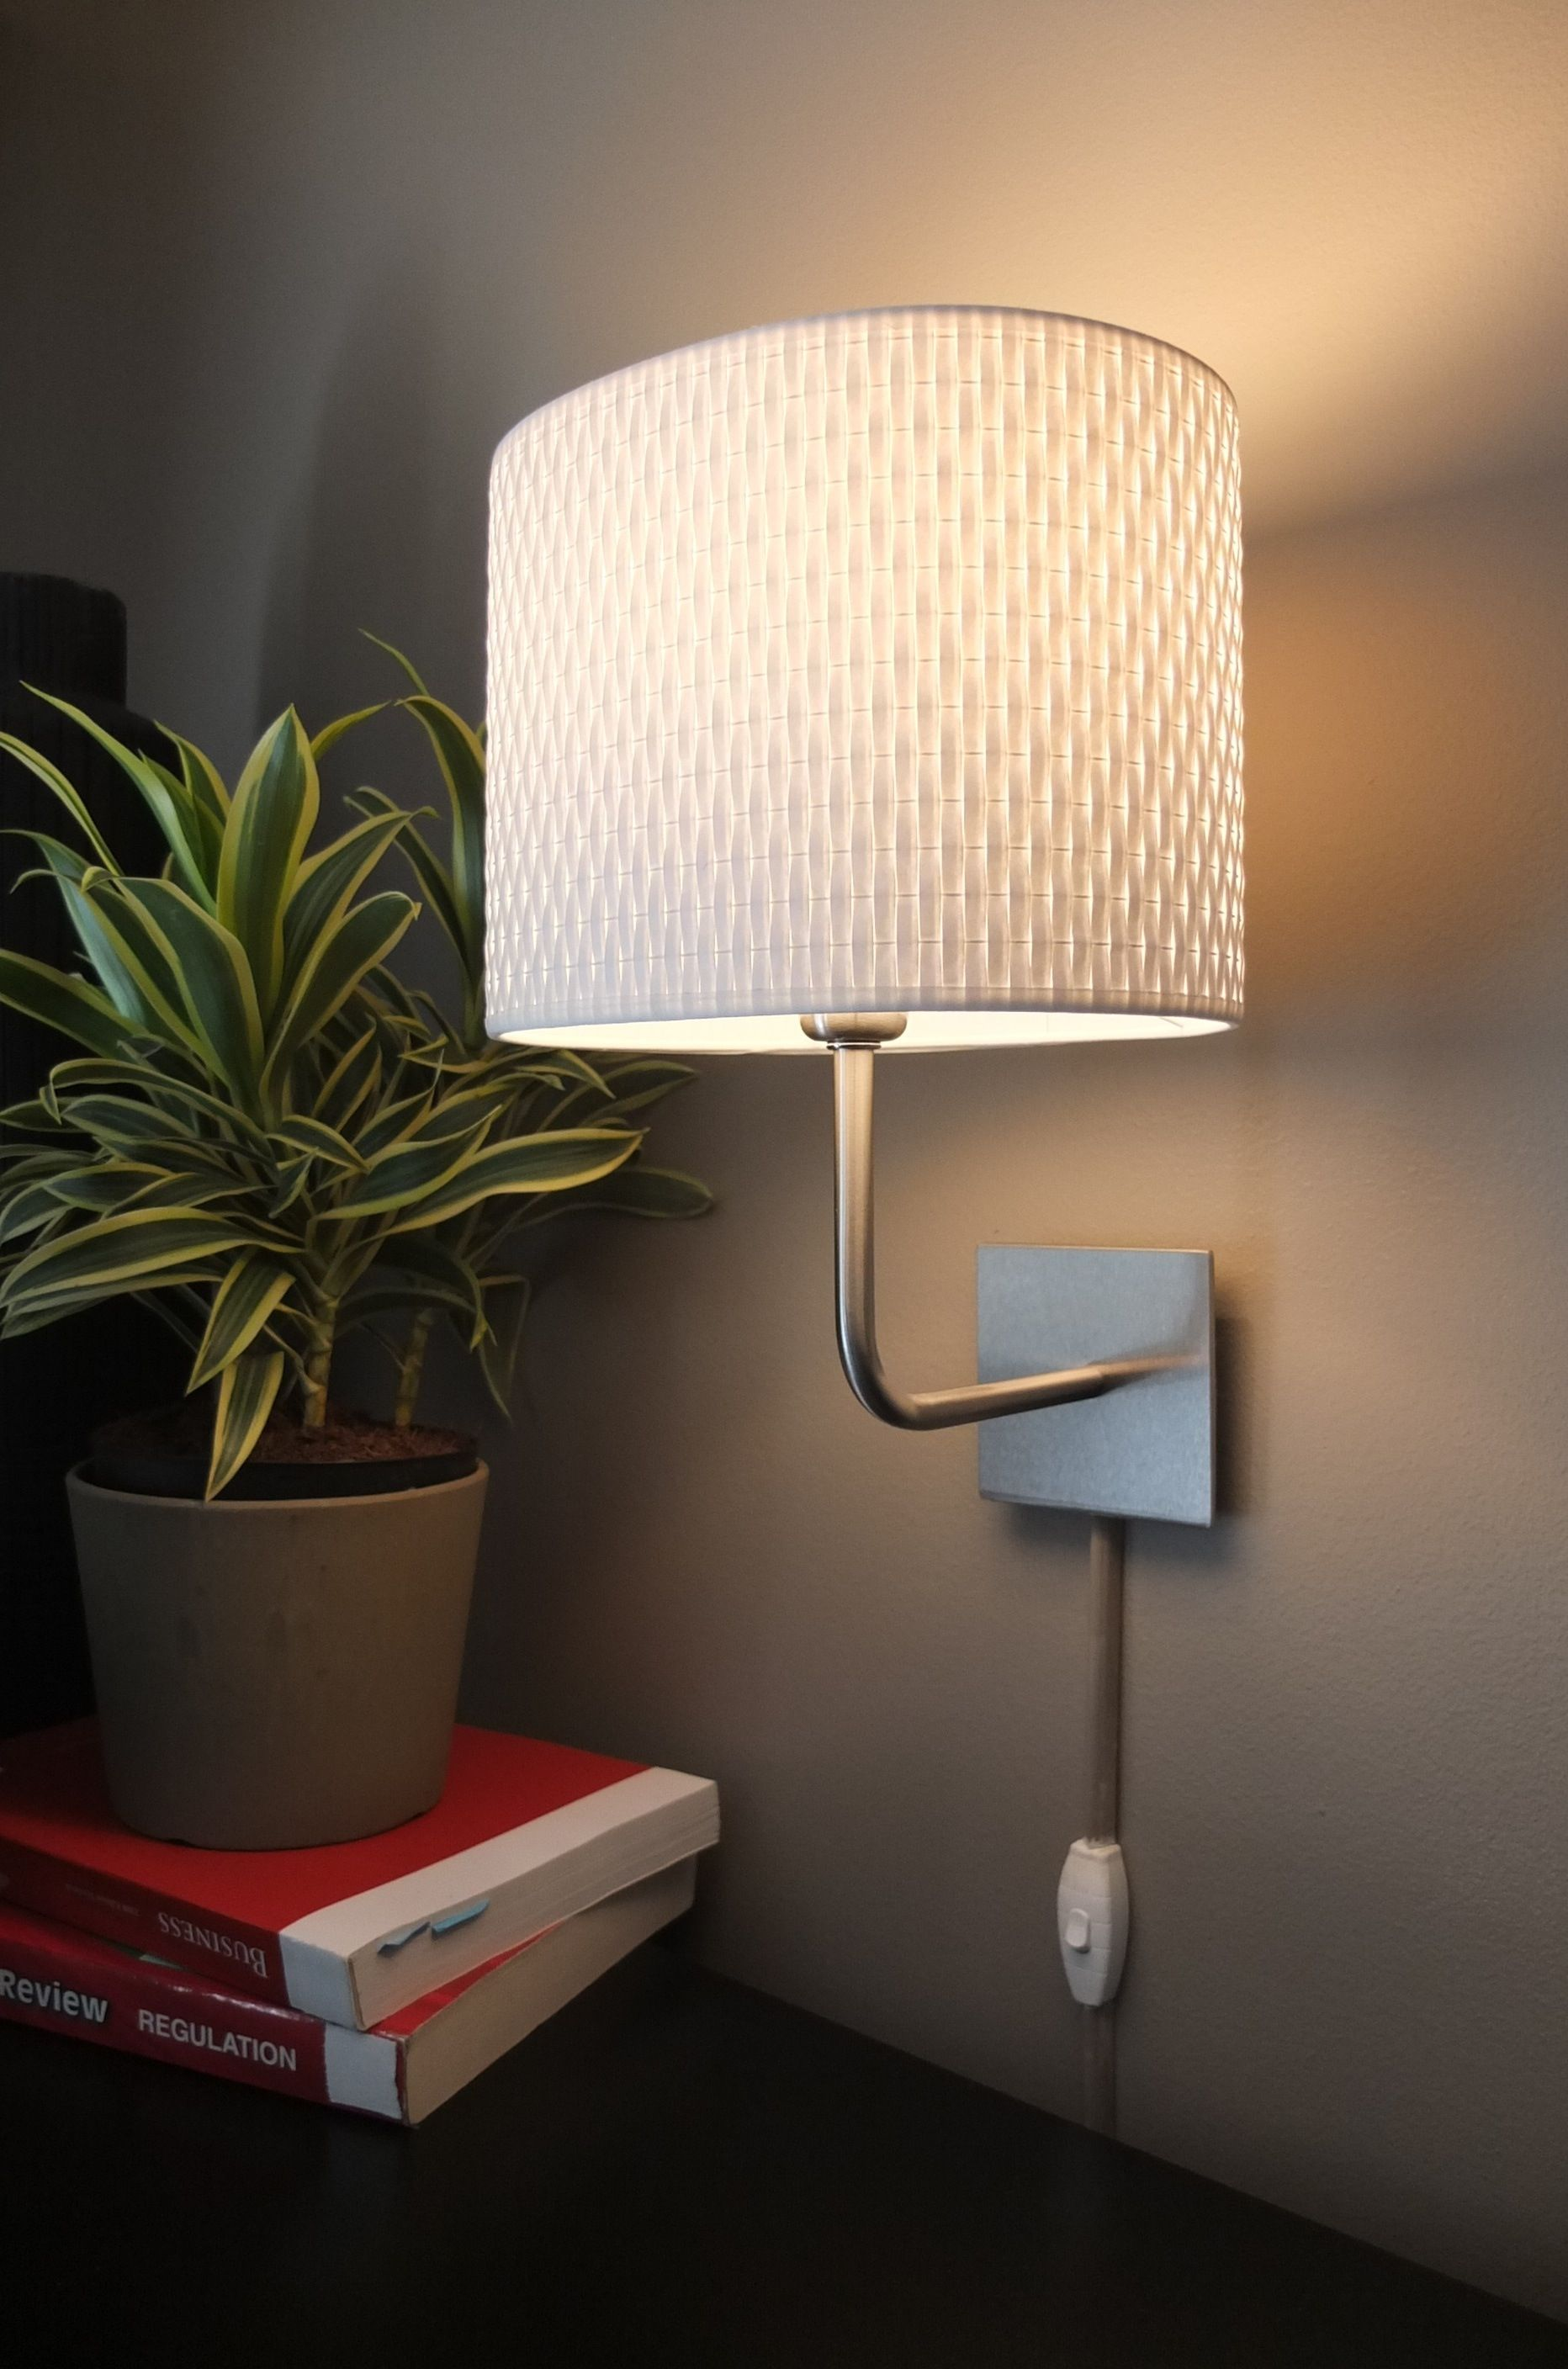 Wall Mounted Ikea Lamps Are An Easy Way To Add Light In A Room Without Ceiling Fixture AlÄng Has Two Color Choices And Coordinating Floor Table